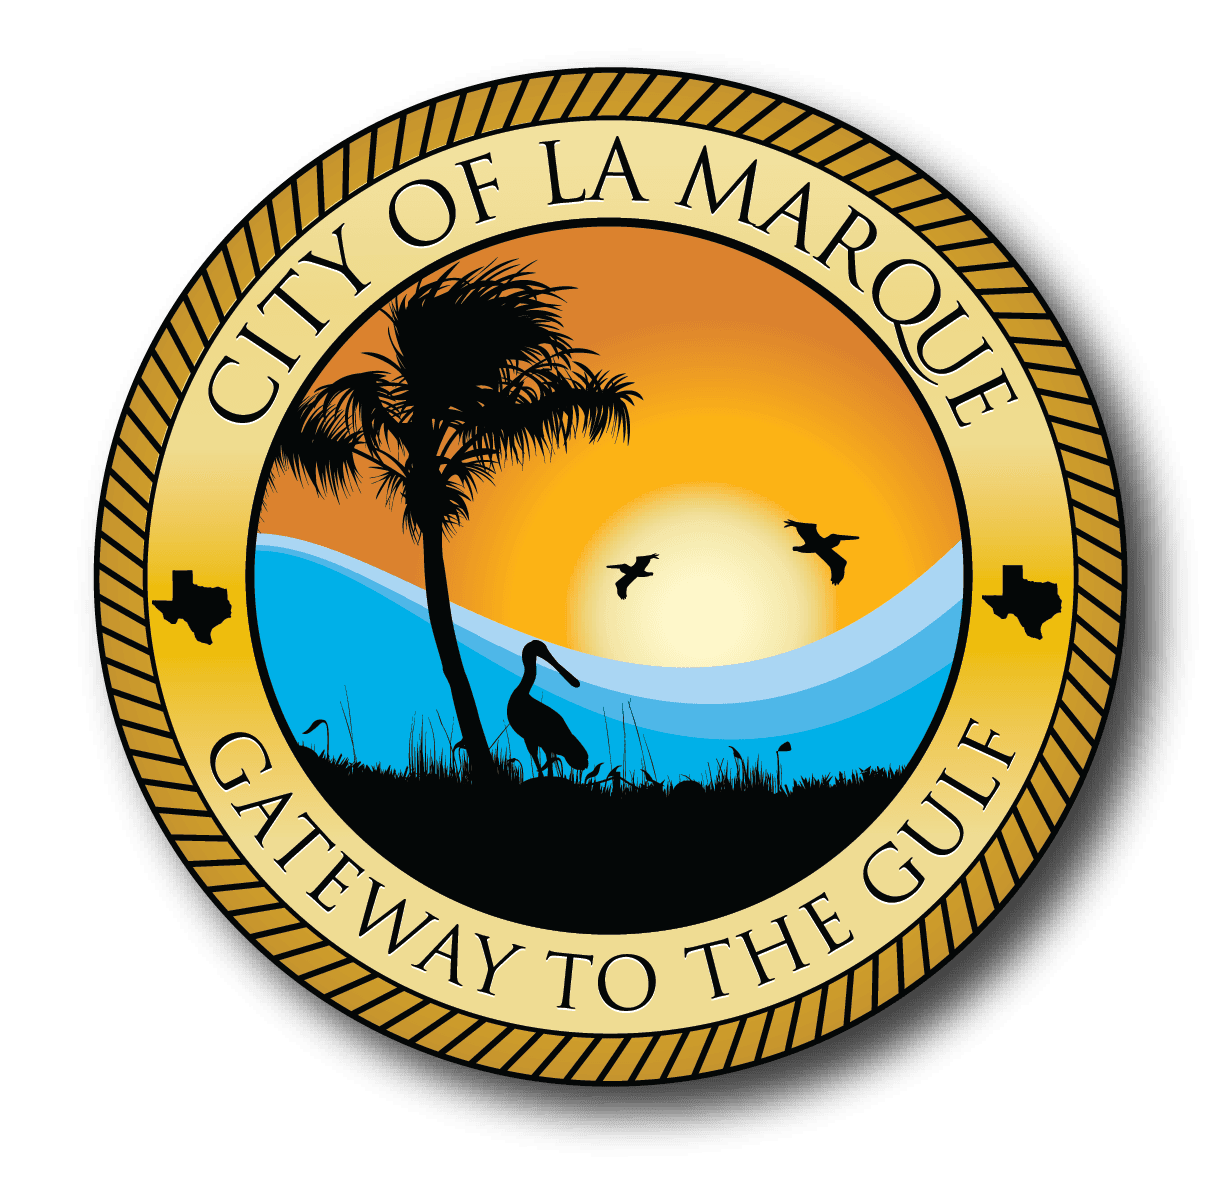 City of La Marque_logo_Full Color